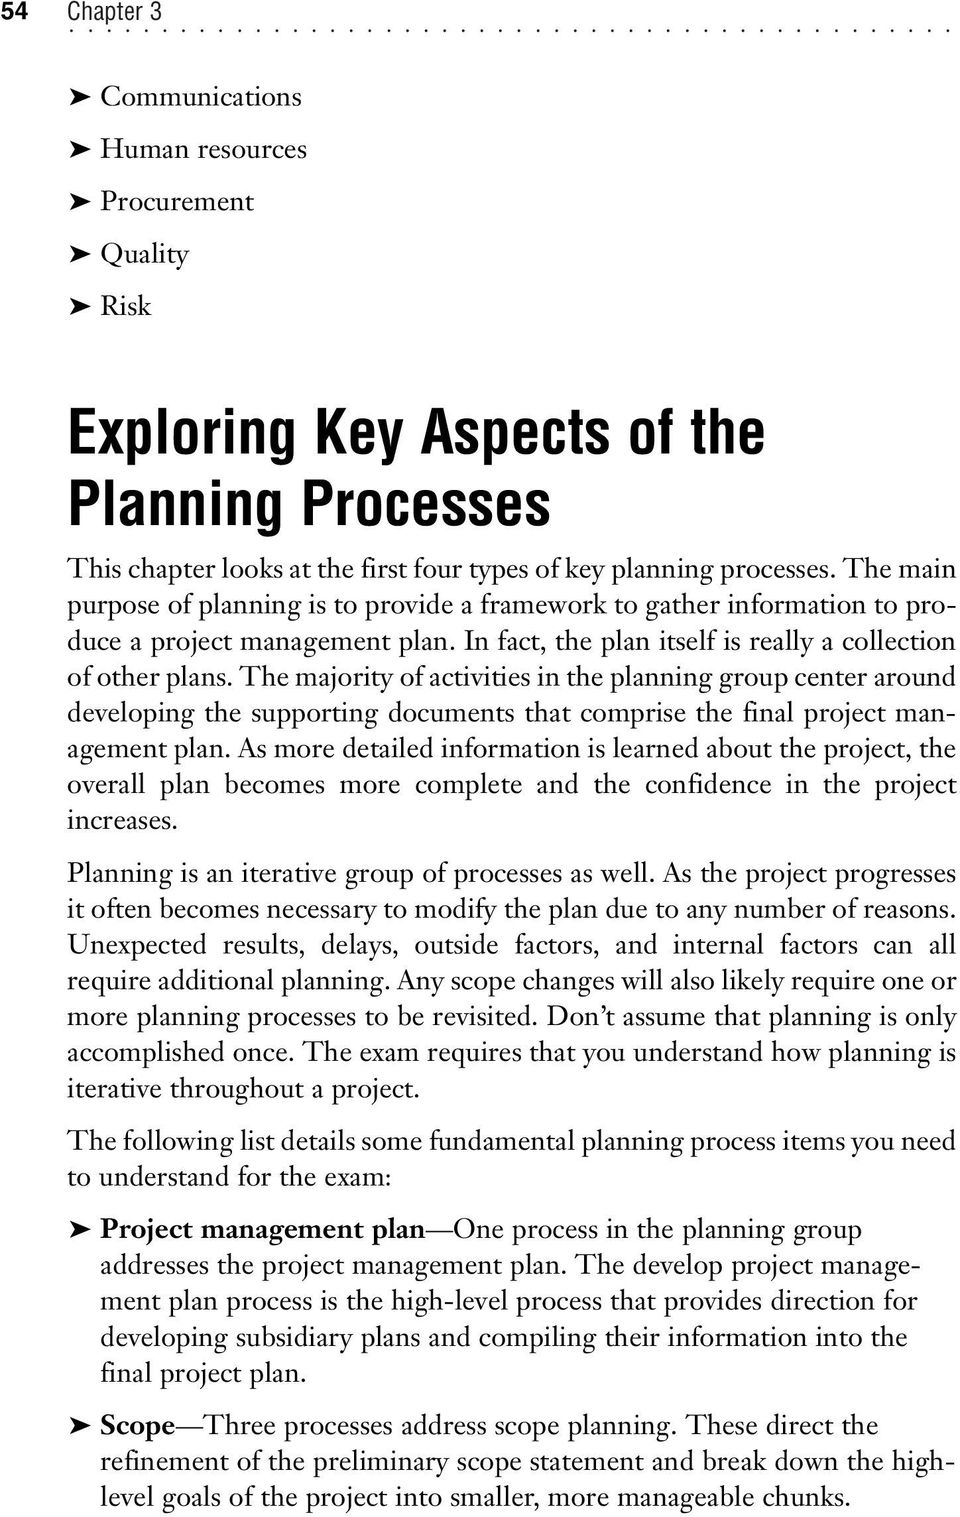 The majority of activities in the planning group center around developing the supporting documents that comprise the final project management plan.